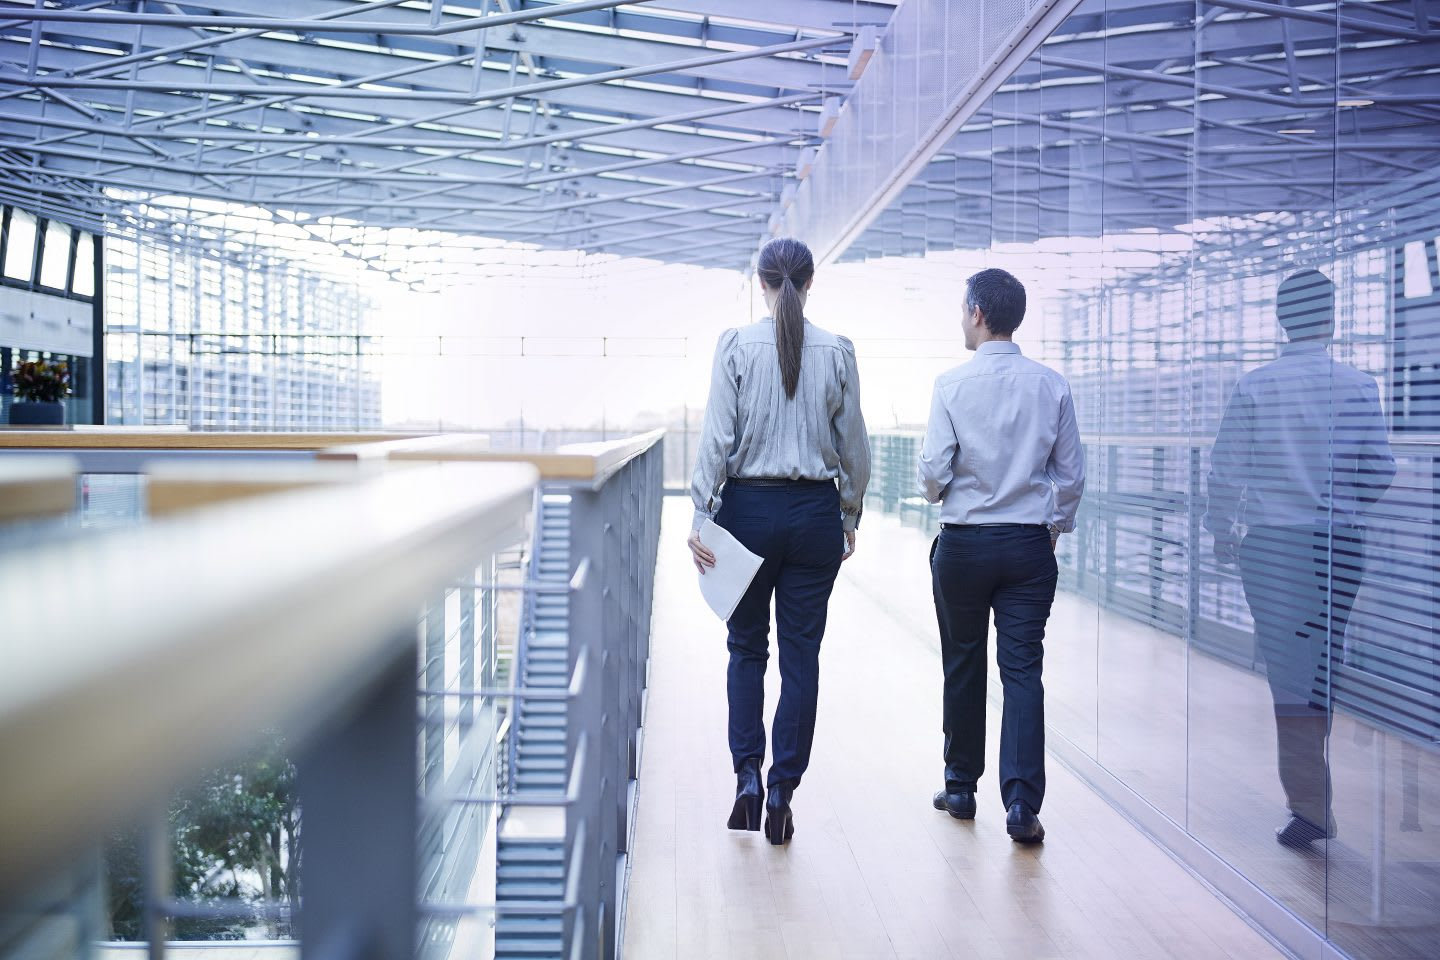 Rear view of businessman and woman walking on office balcony. Mental strength, brainwaves, career, sports, synchronized brains, performance, psychology, research, GamePlan A